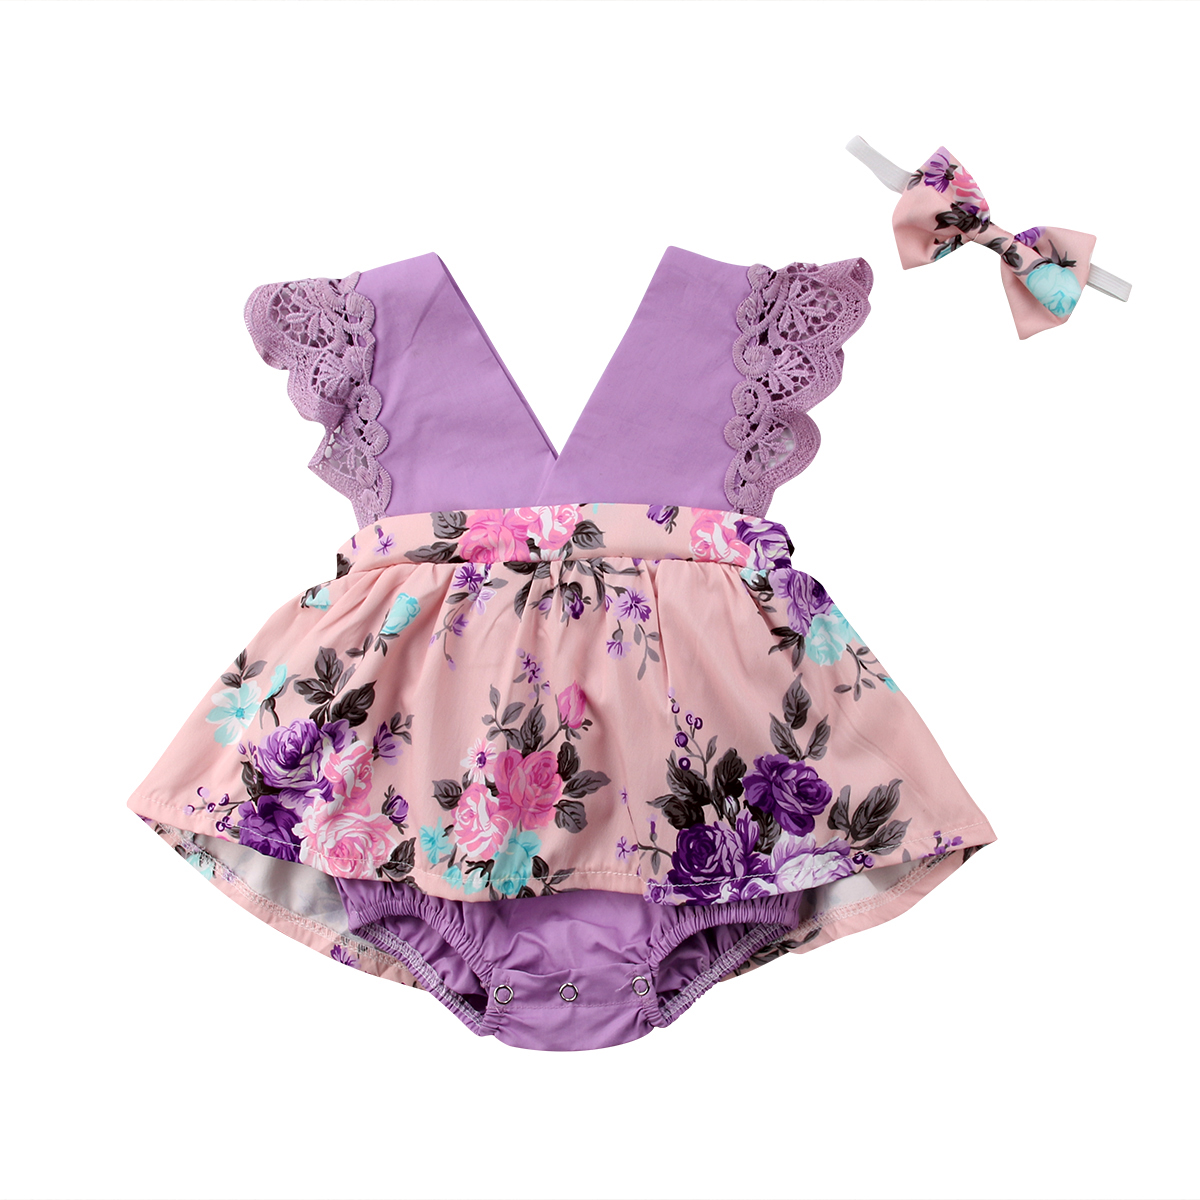 Pretty Lace Kids Sister Girl Summer Clothes Floral Print Romper Dress Sleeveless Tutu Matching Summer Purple Outfit High Quality Mother & Kids